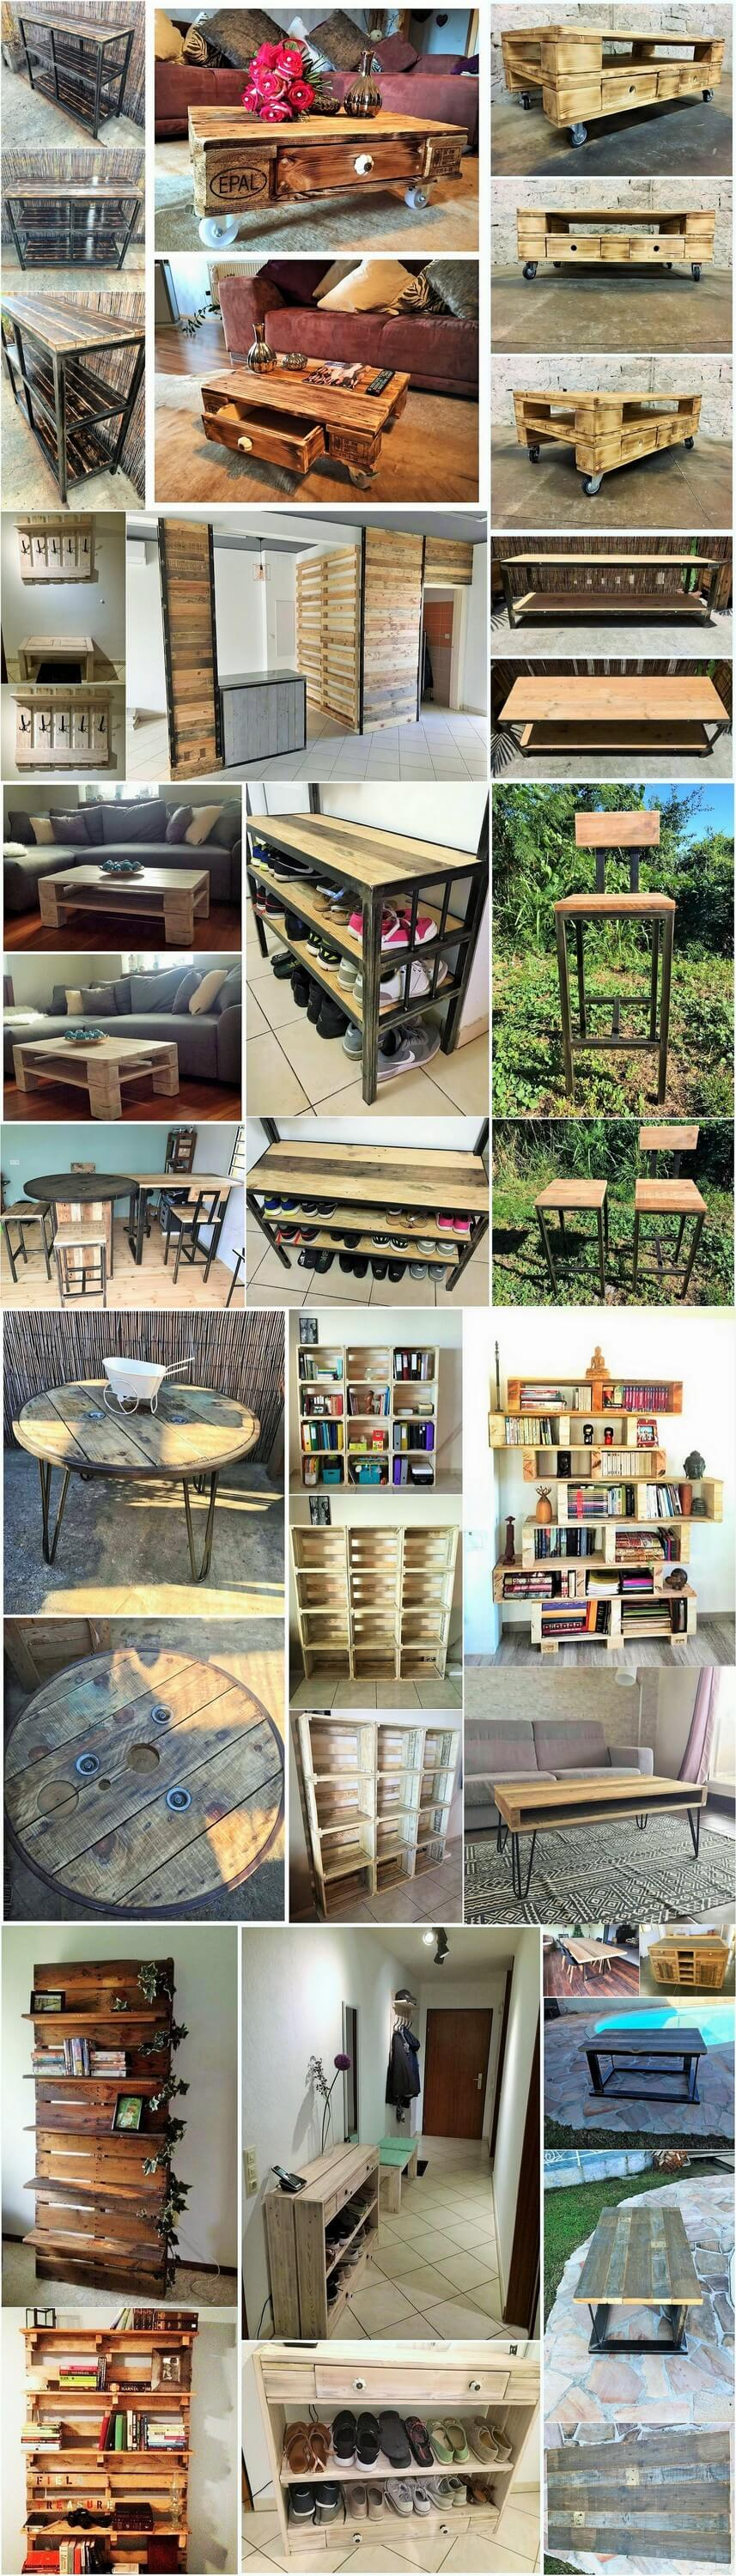 DIY Wooden Pallets Ideas (19)